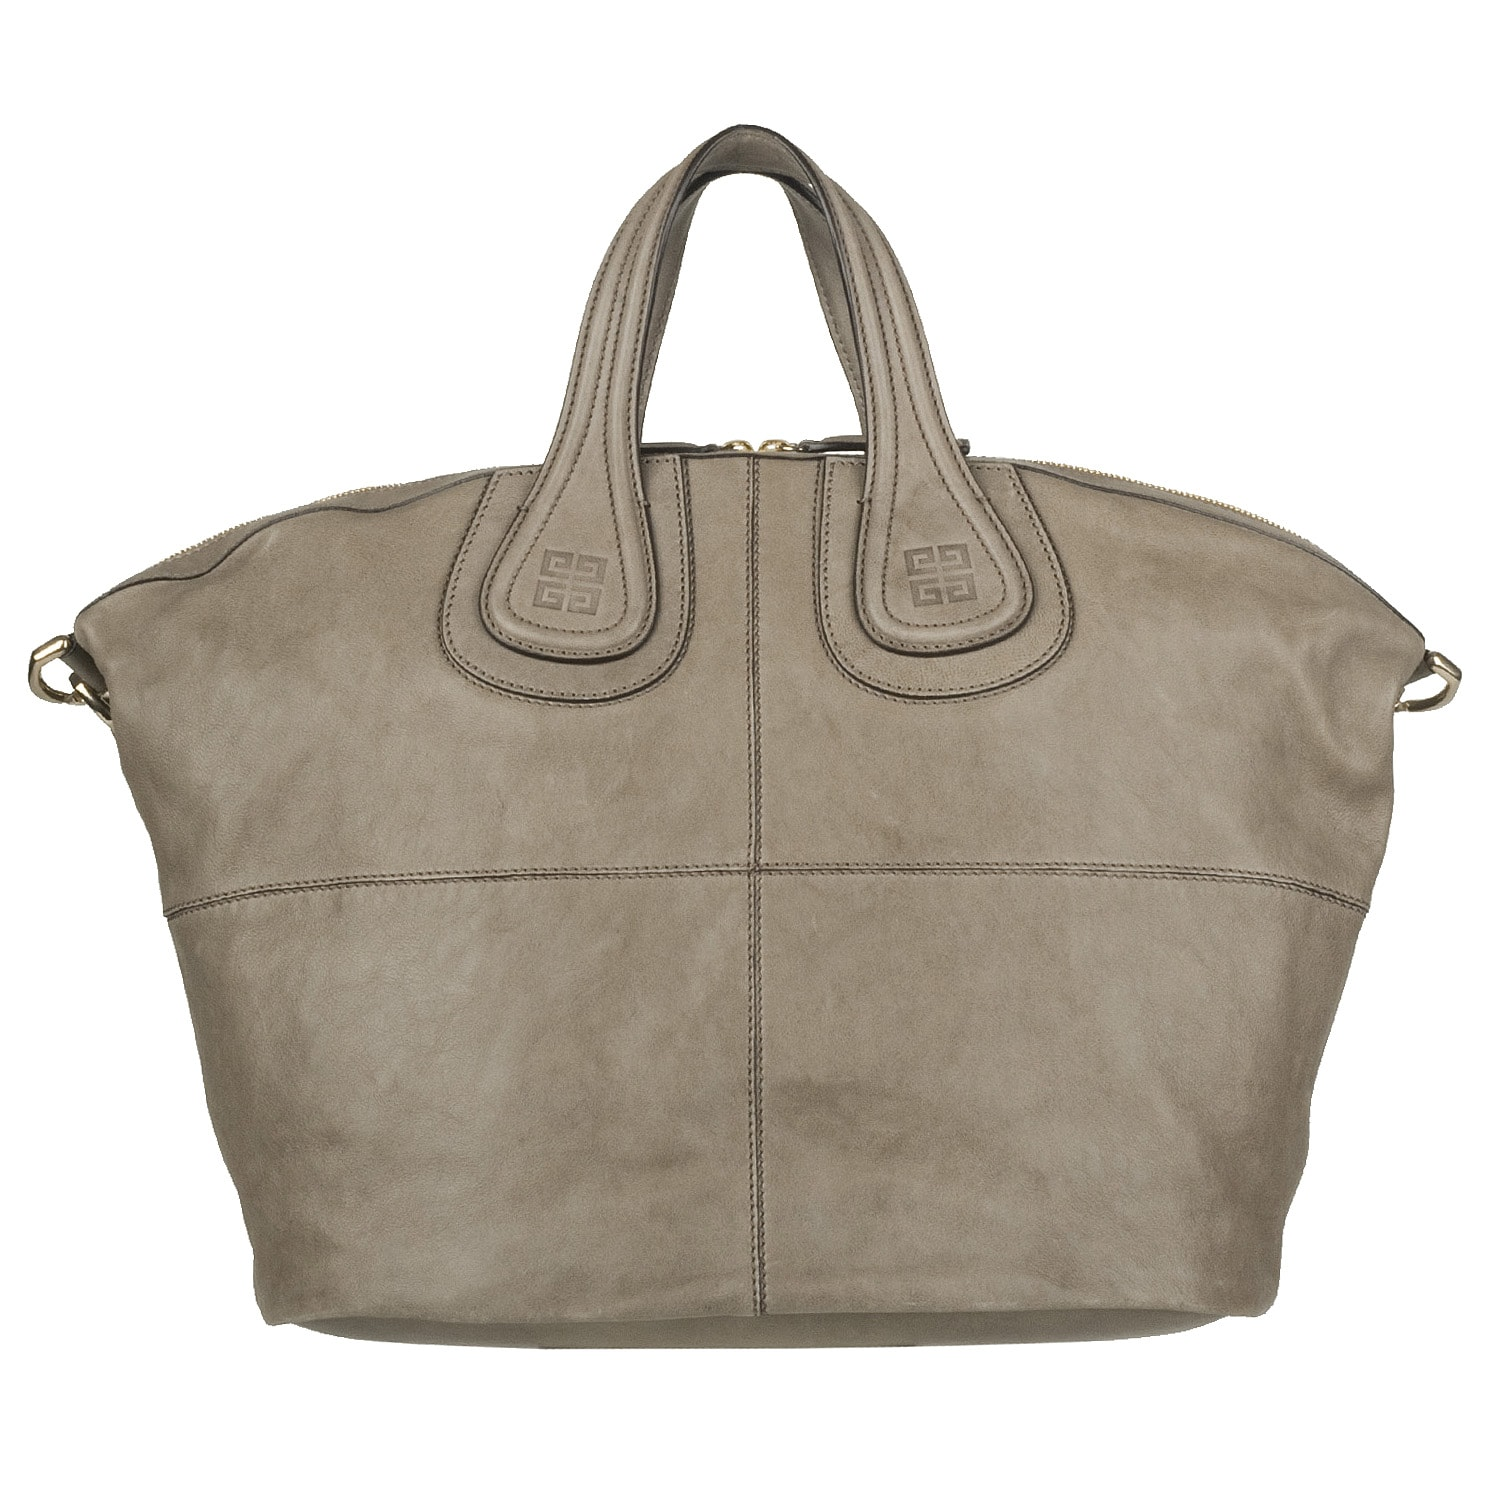 835cd96d8a26 Shop Givenchy Medium Nightingale Taupe Leather Tote Bag - Free Shipping  Today - Overstock.com - 6131078